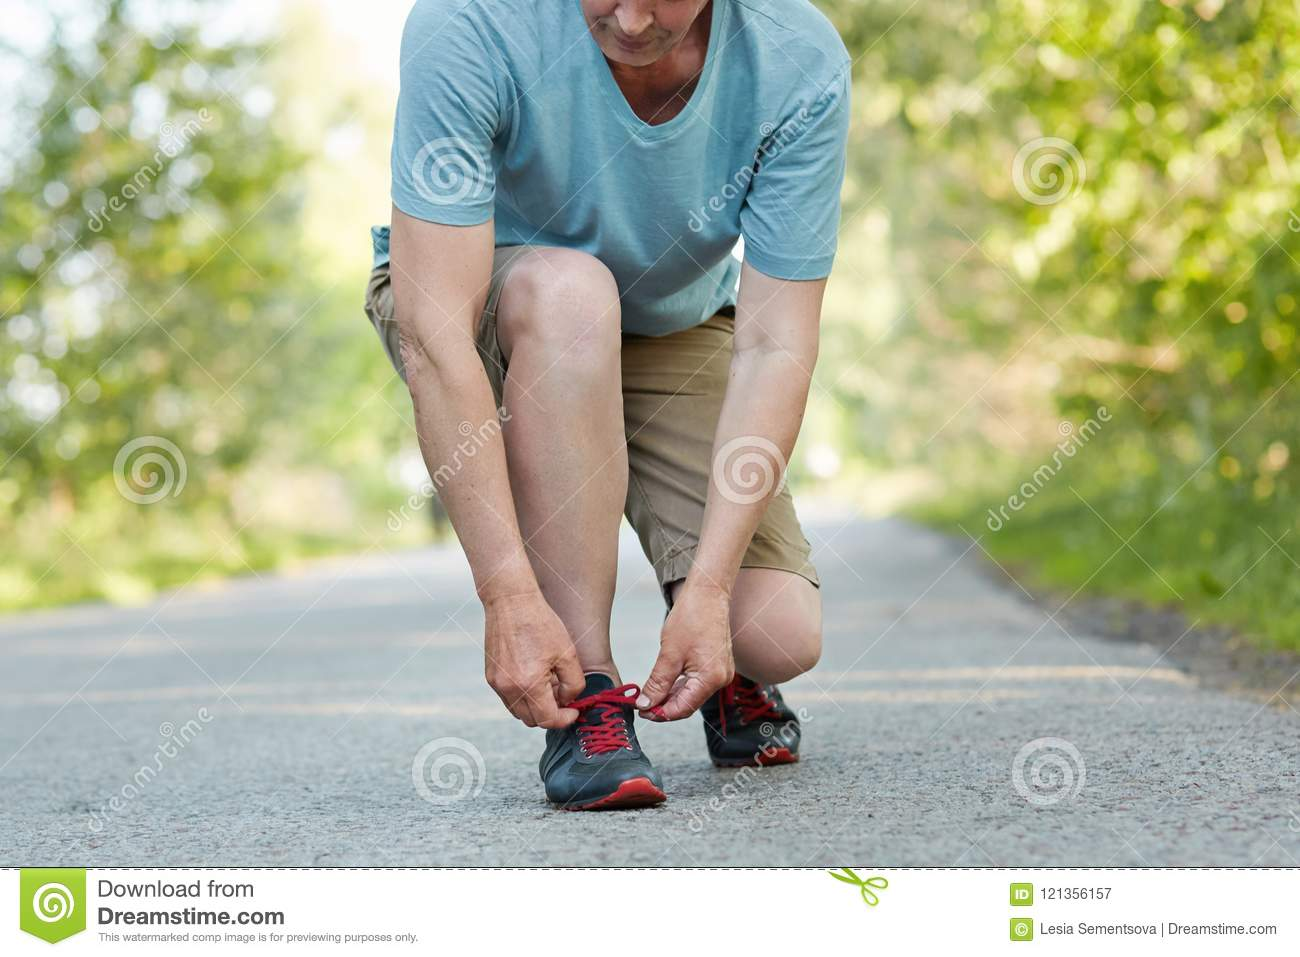 Cropped shot of elderly male athlete ties shoelaces, takes rest after jogging exercise, wears sportswear, poses outdoor. Man runne